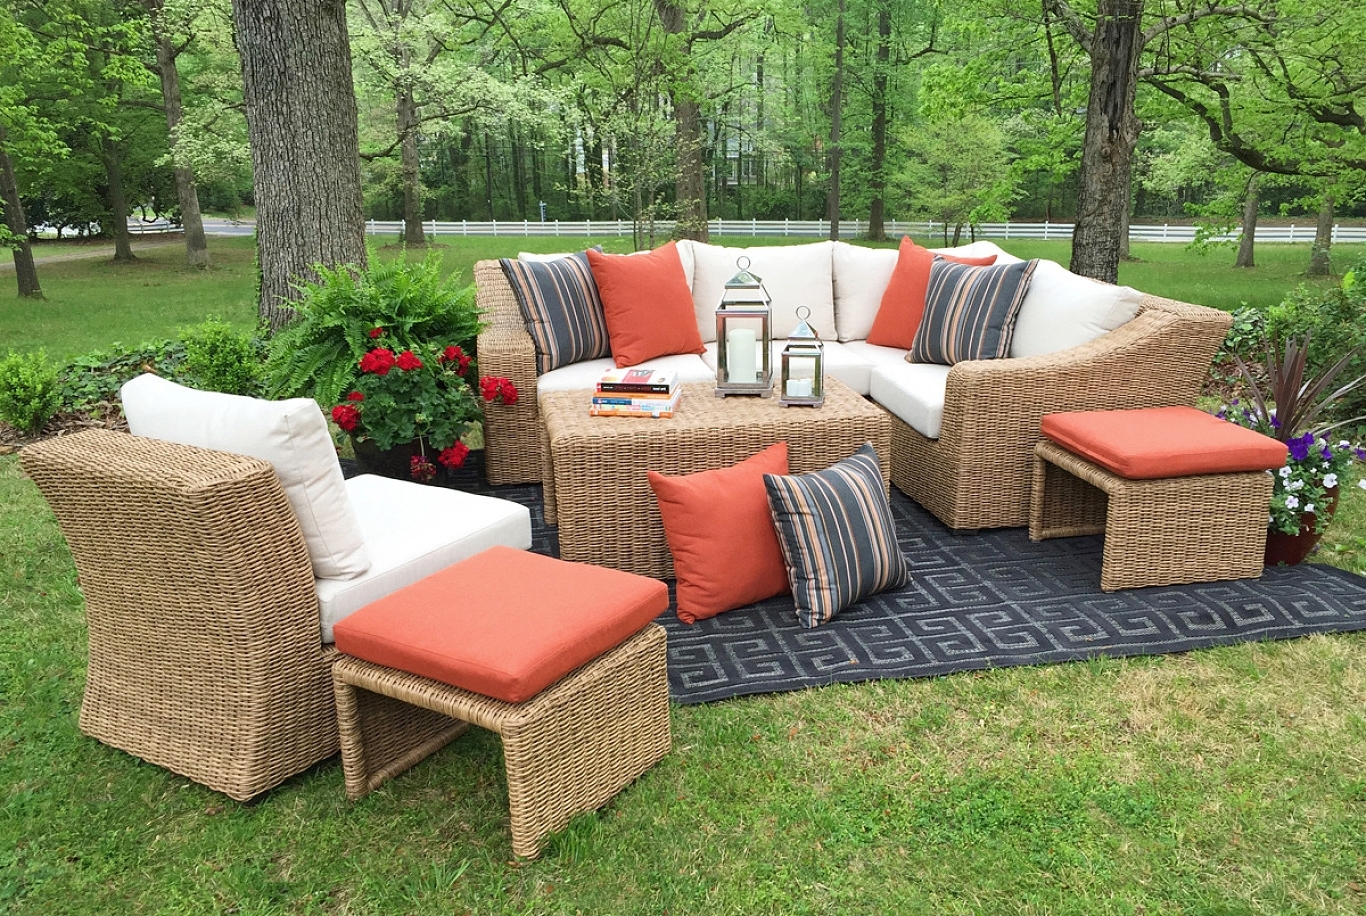 Widely Used Macys Outdoor Chaise Lounge Chairs Regarding Sunbrella Patio Furniture Covers Sunbrella Chaise Lounge Sunbrella (View 15 of 15)